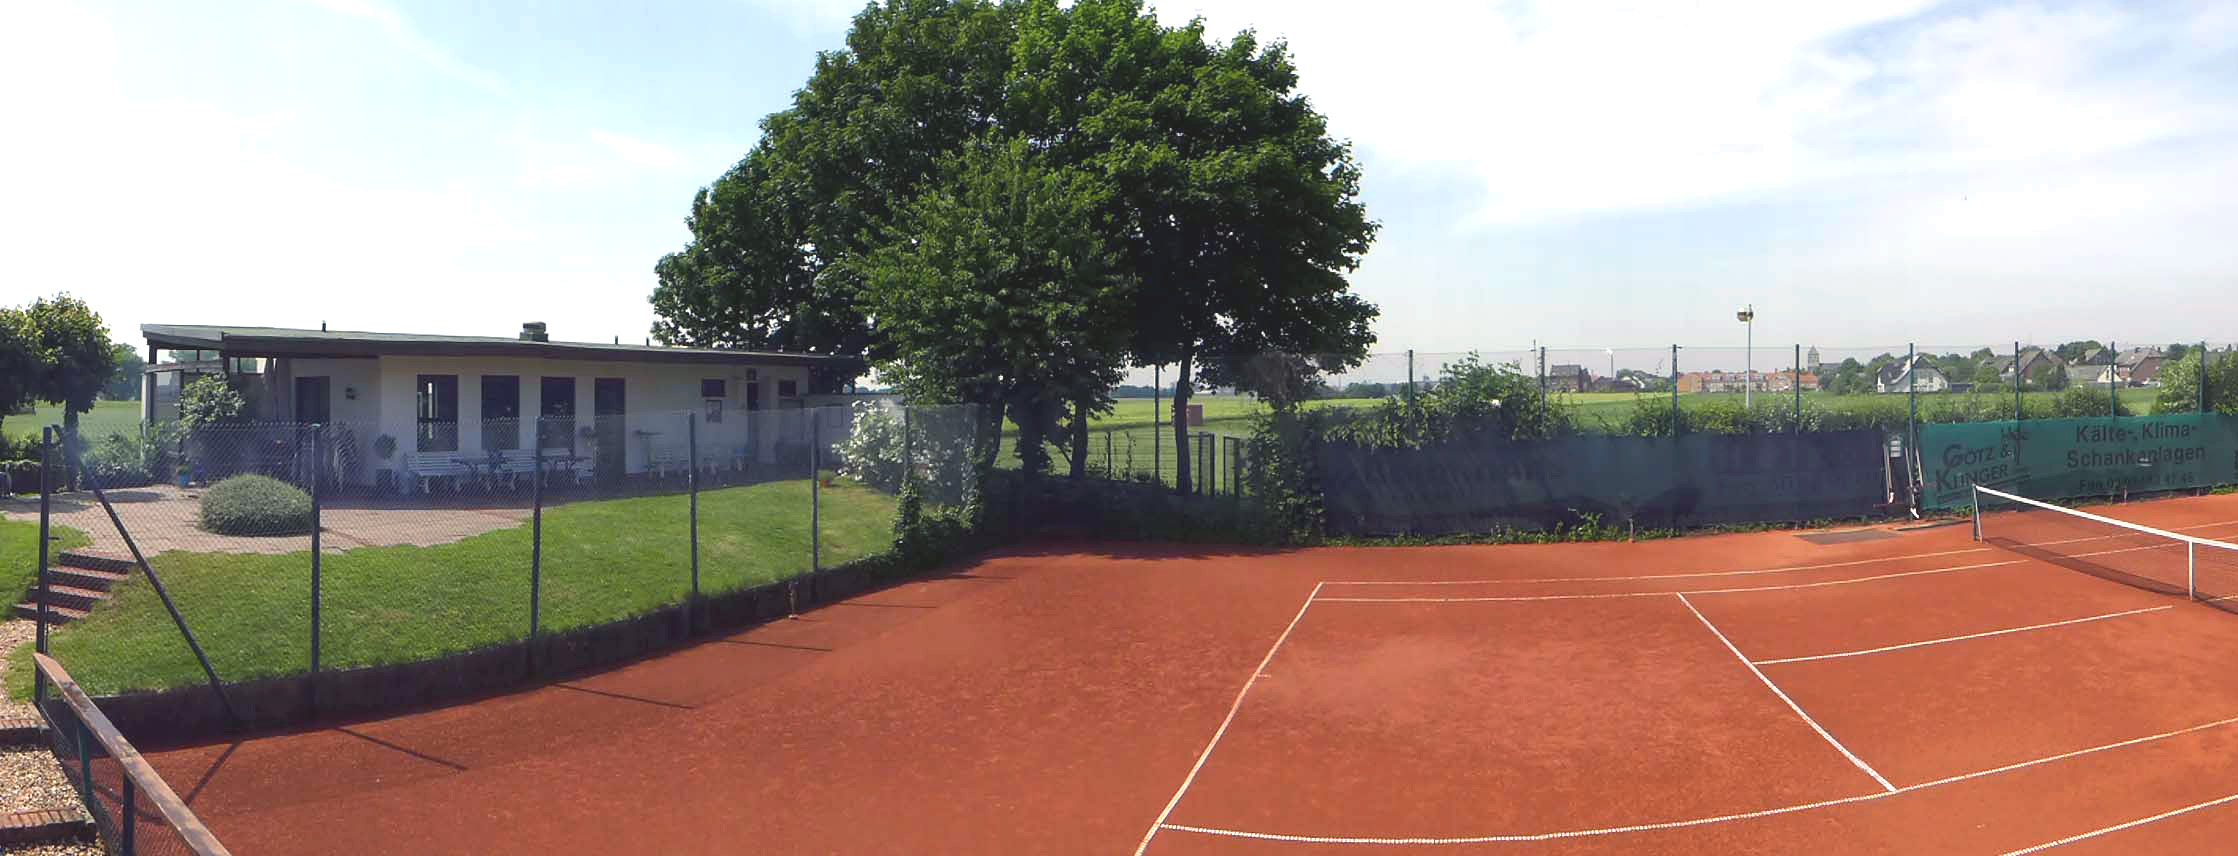 tennis-halbpanorama-homepage